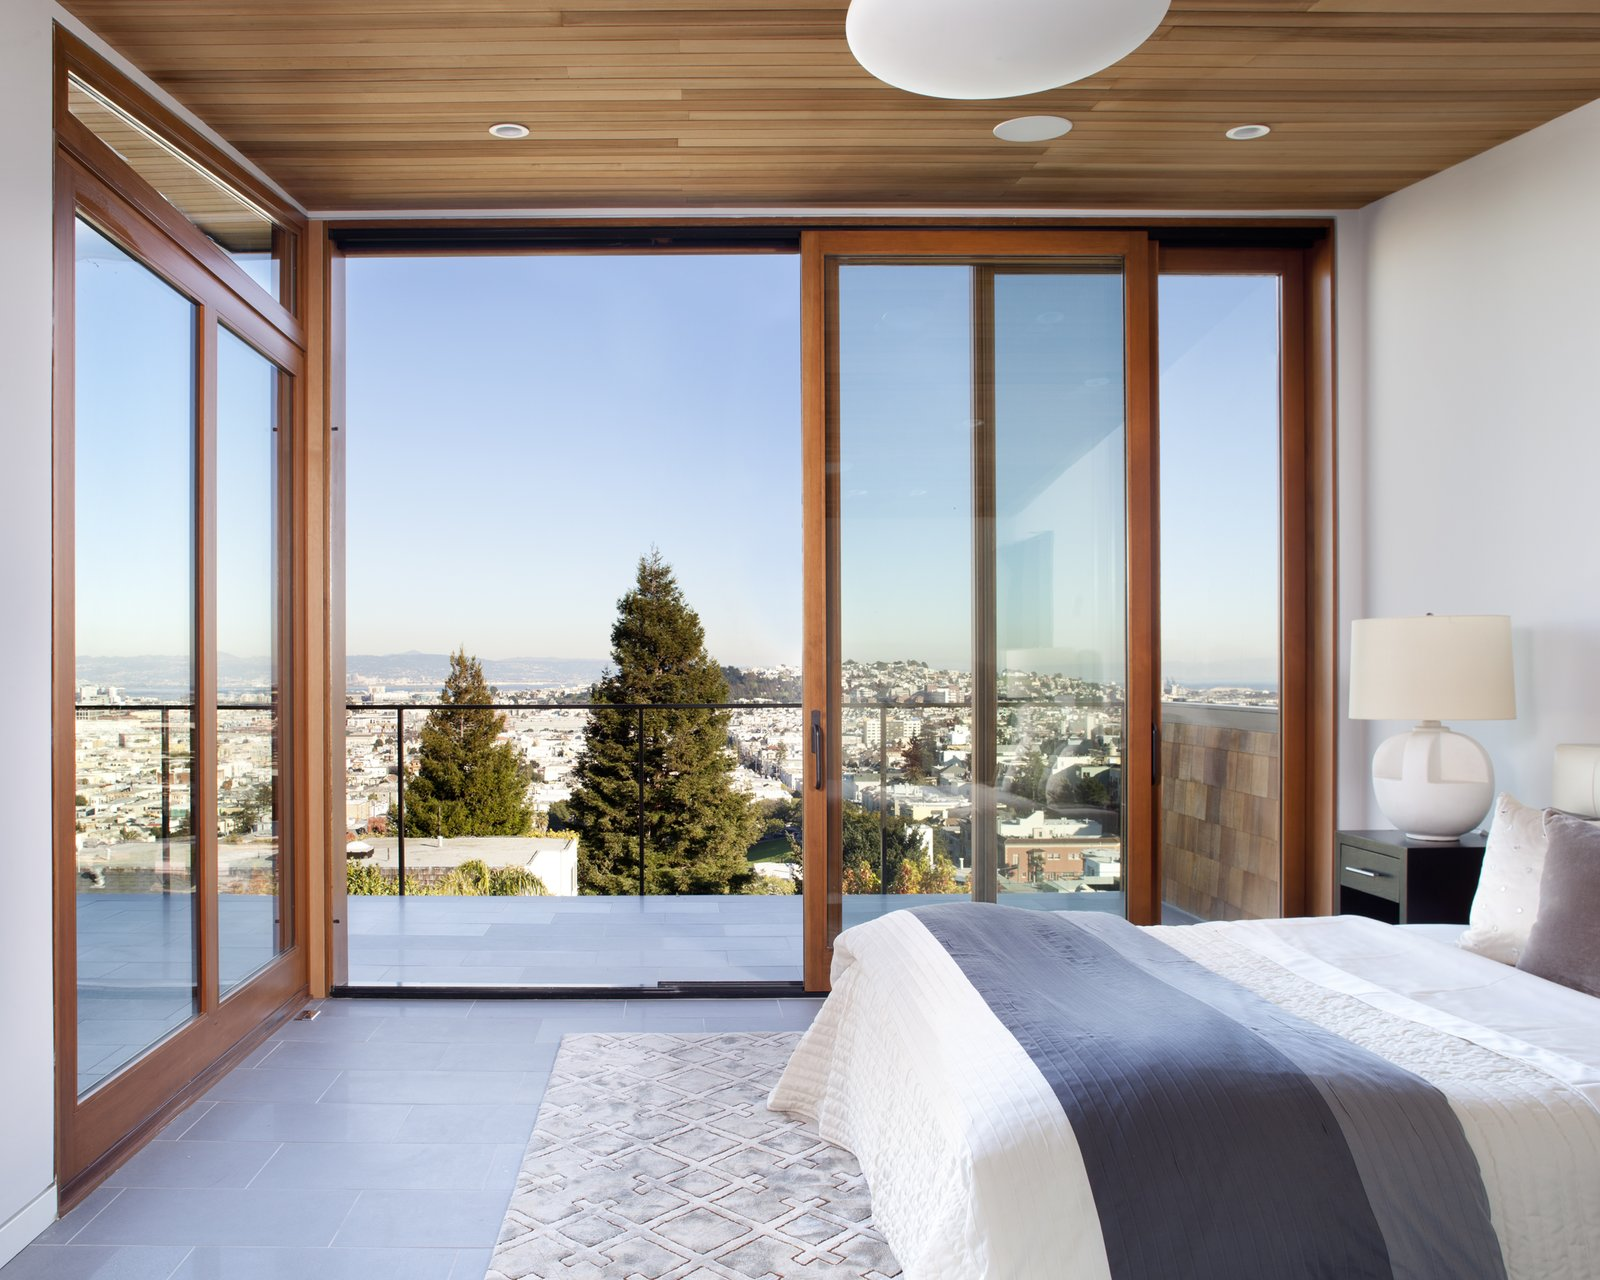 Bedroom, Night Stands, Bed, Porcelain Tile Floor, Recessed Lighting, and Pendant Lighting cedar wood ceiling quantum sliding doors porcelain tile flooring master bedroom  Bungalow Update by McElroy Architecture